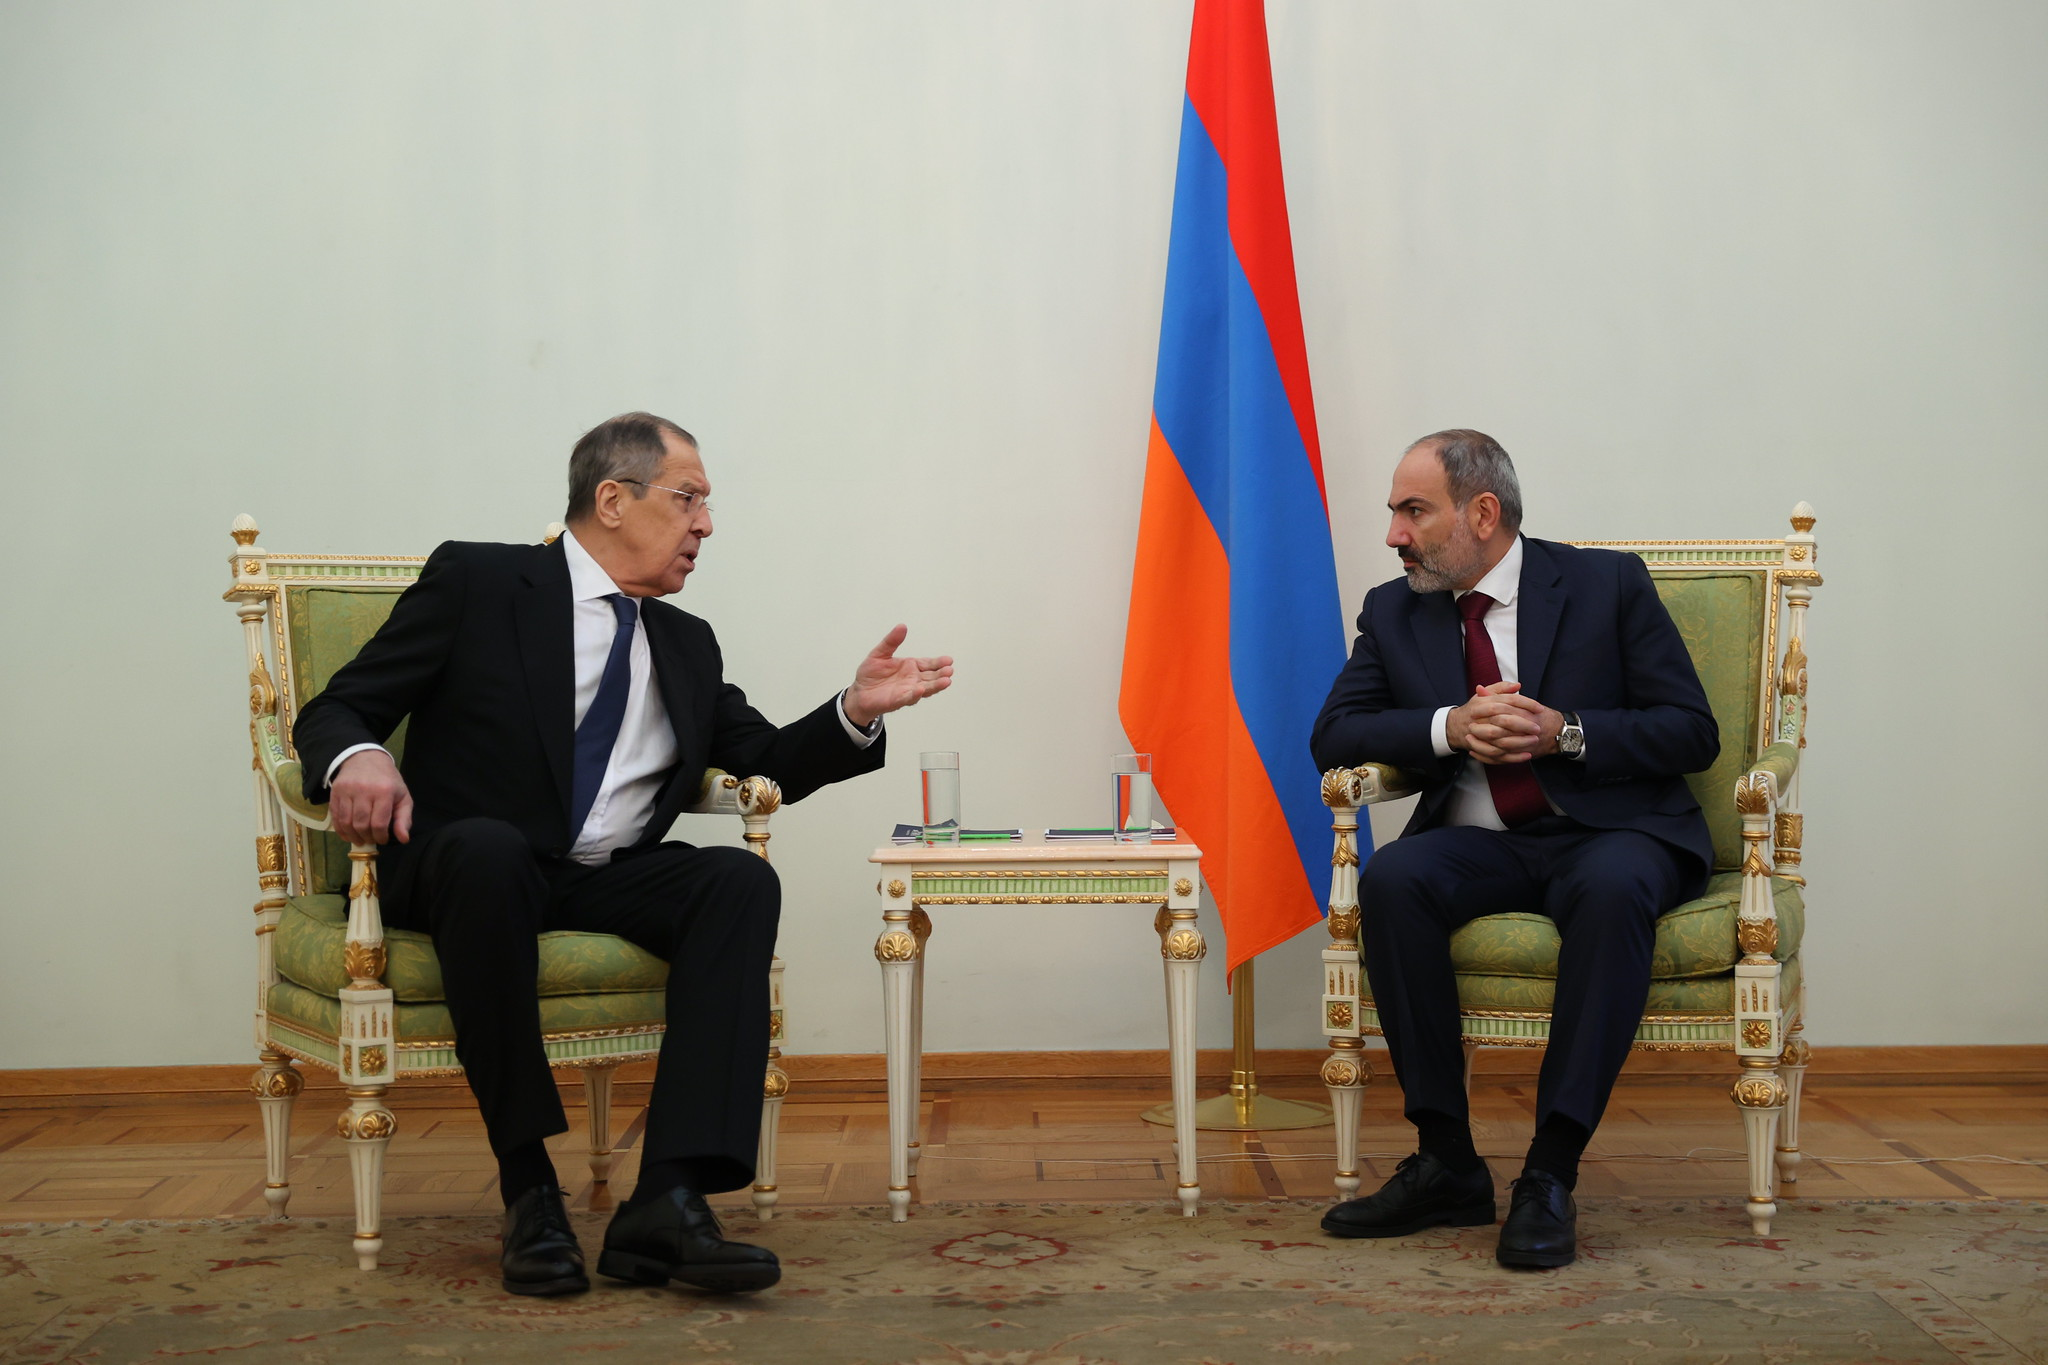 Russian Inspection: Lavrov, Shoigu Visit Armenia and Azerbaijan